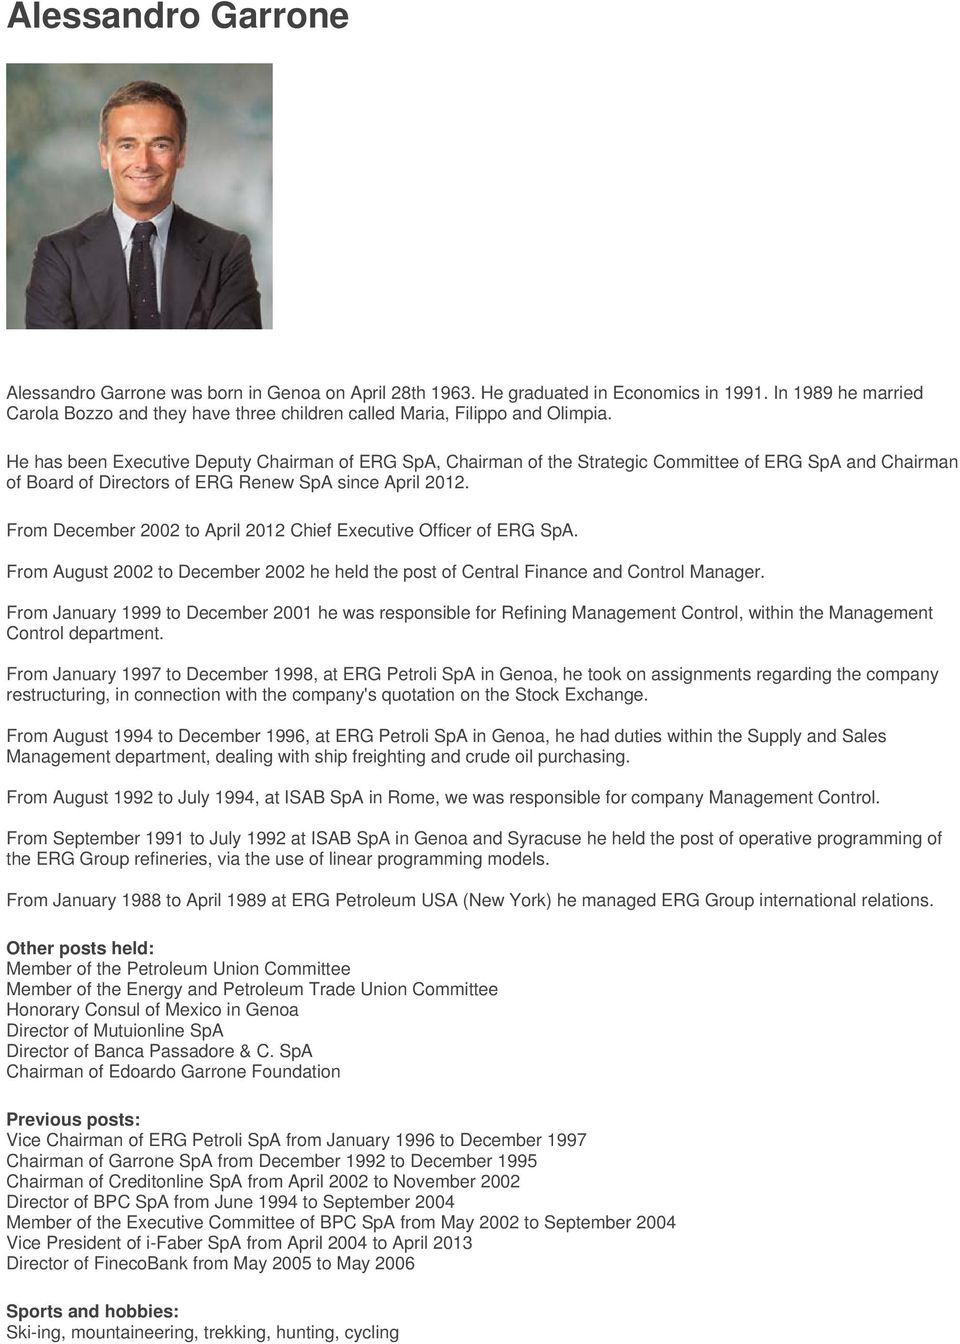 He has been Executive Deputy Chairman of ERG SpA, Chairman of the Strategic Committee of ERG SpA and Chairman of Board of Directors of ERG Renew SpA since April 2012.